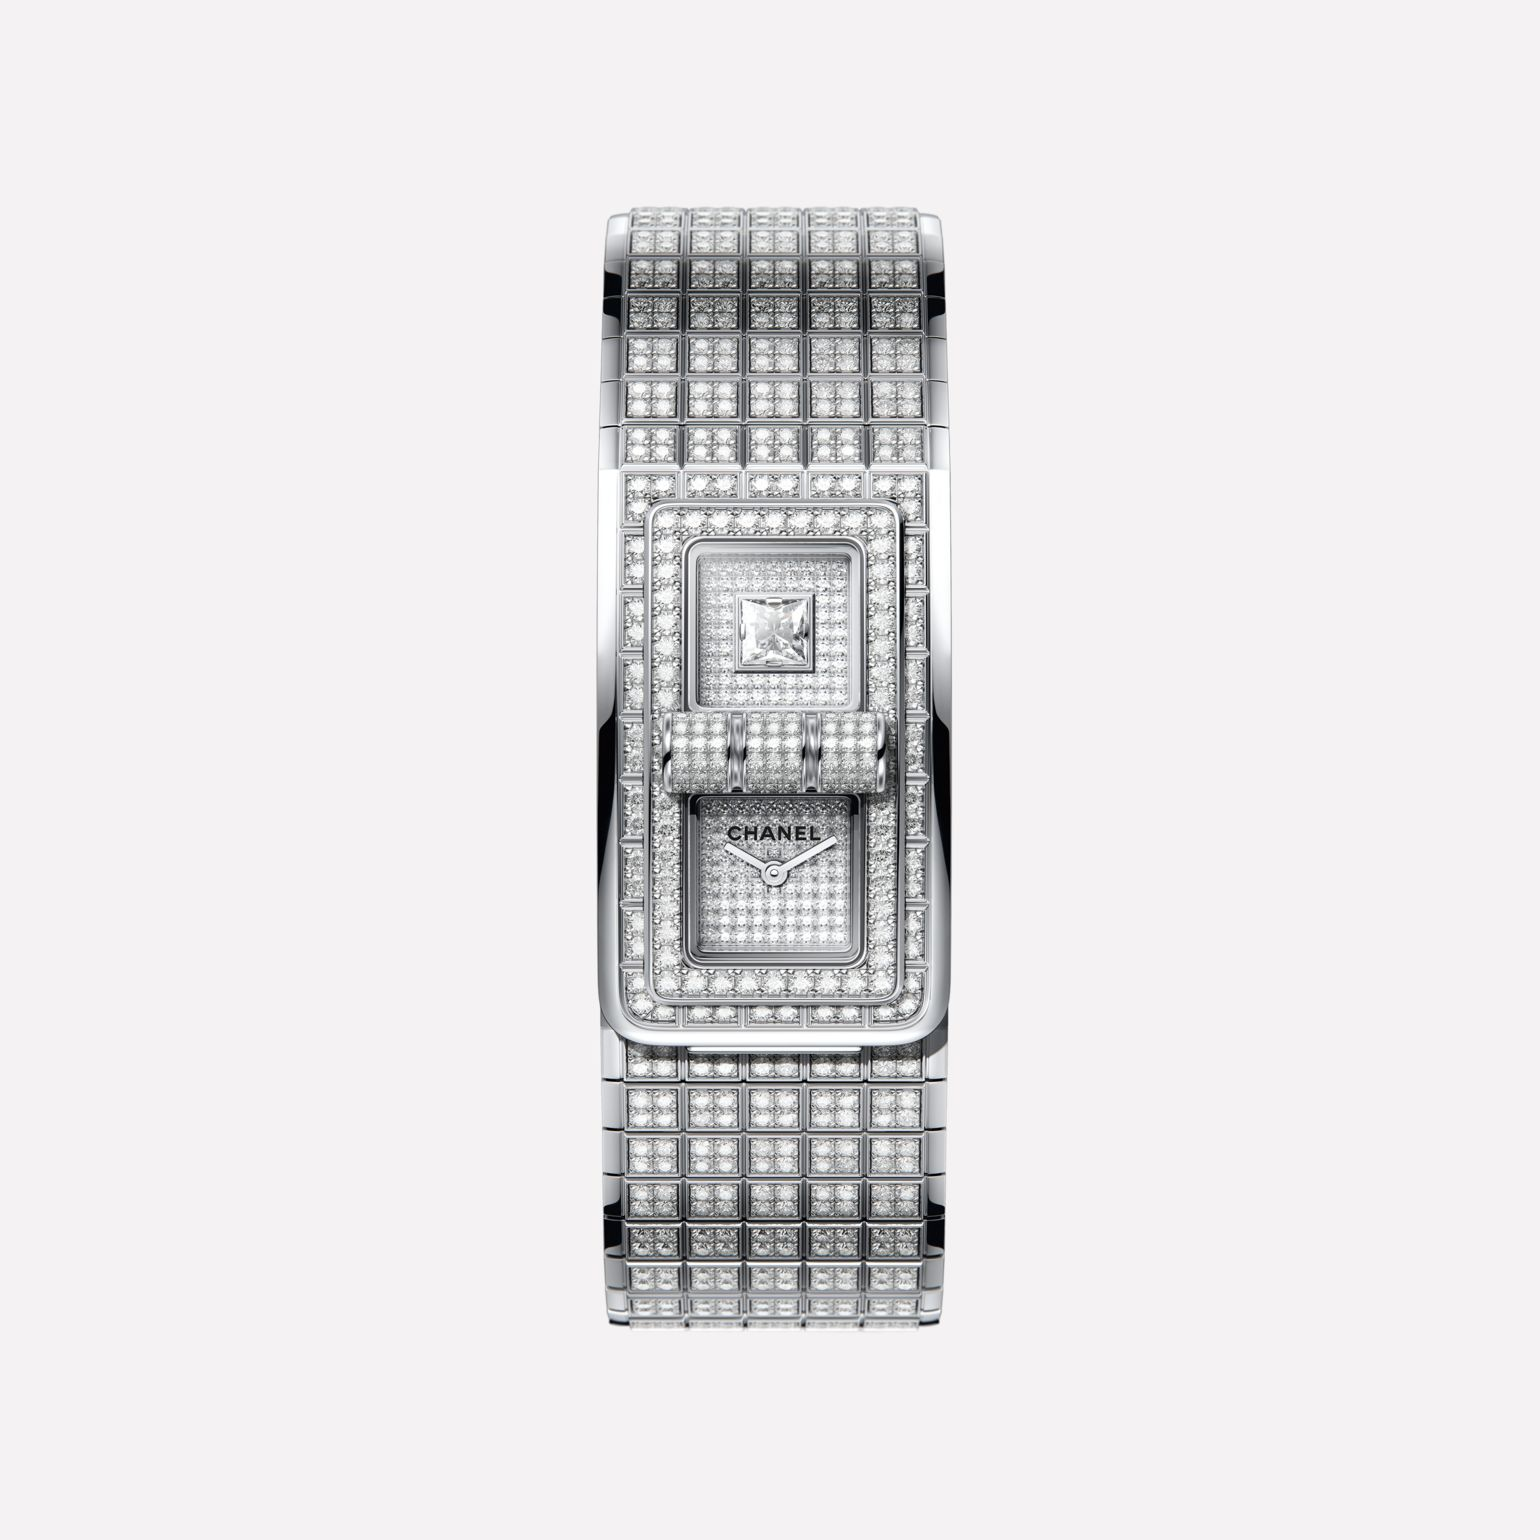 MONTRE CODE COCO Or blanc 18 carats serti de diamants taille brillant